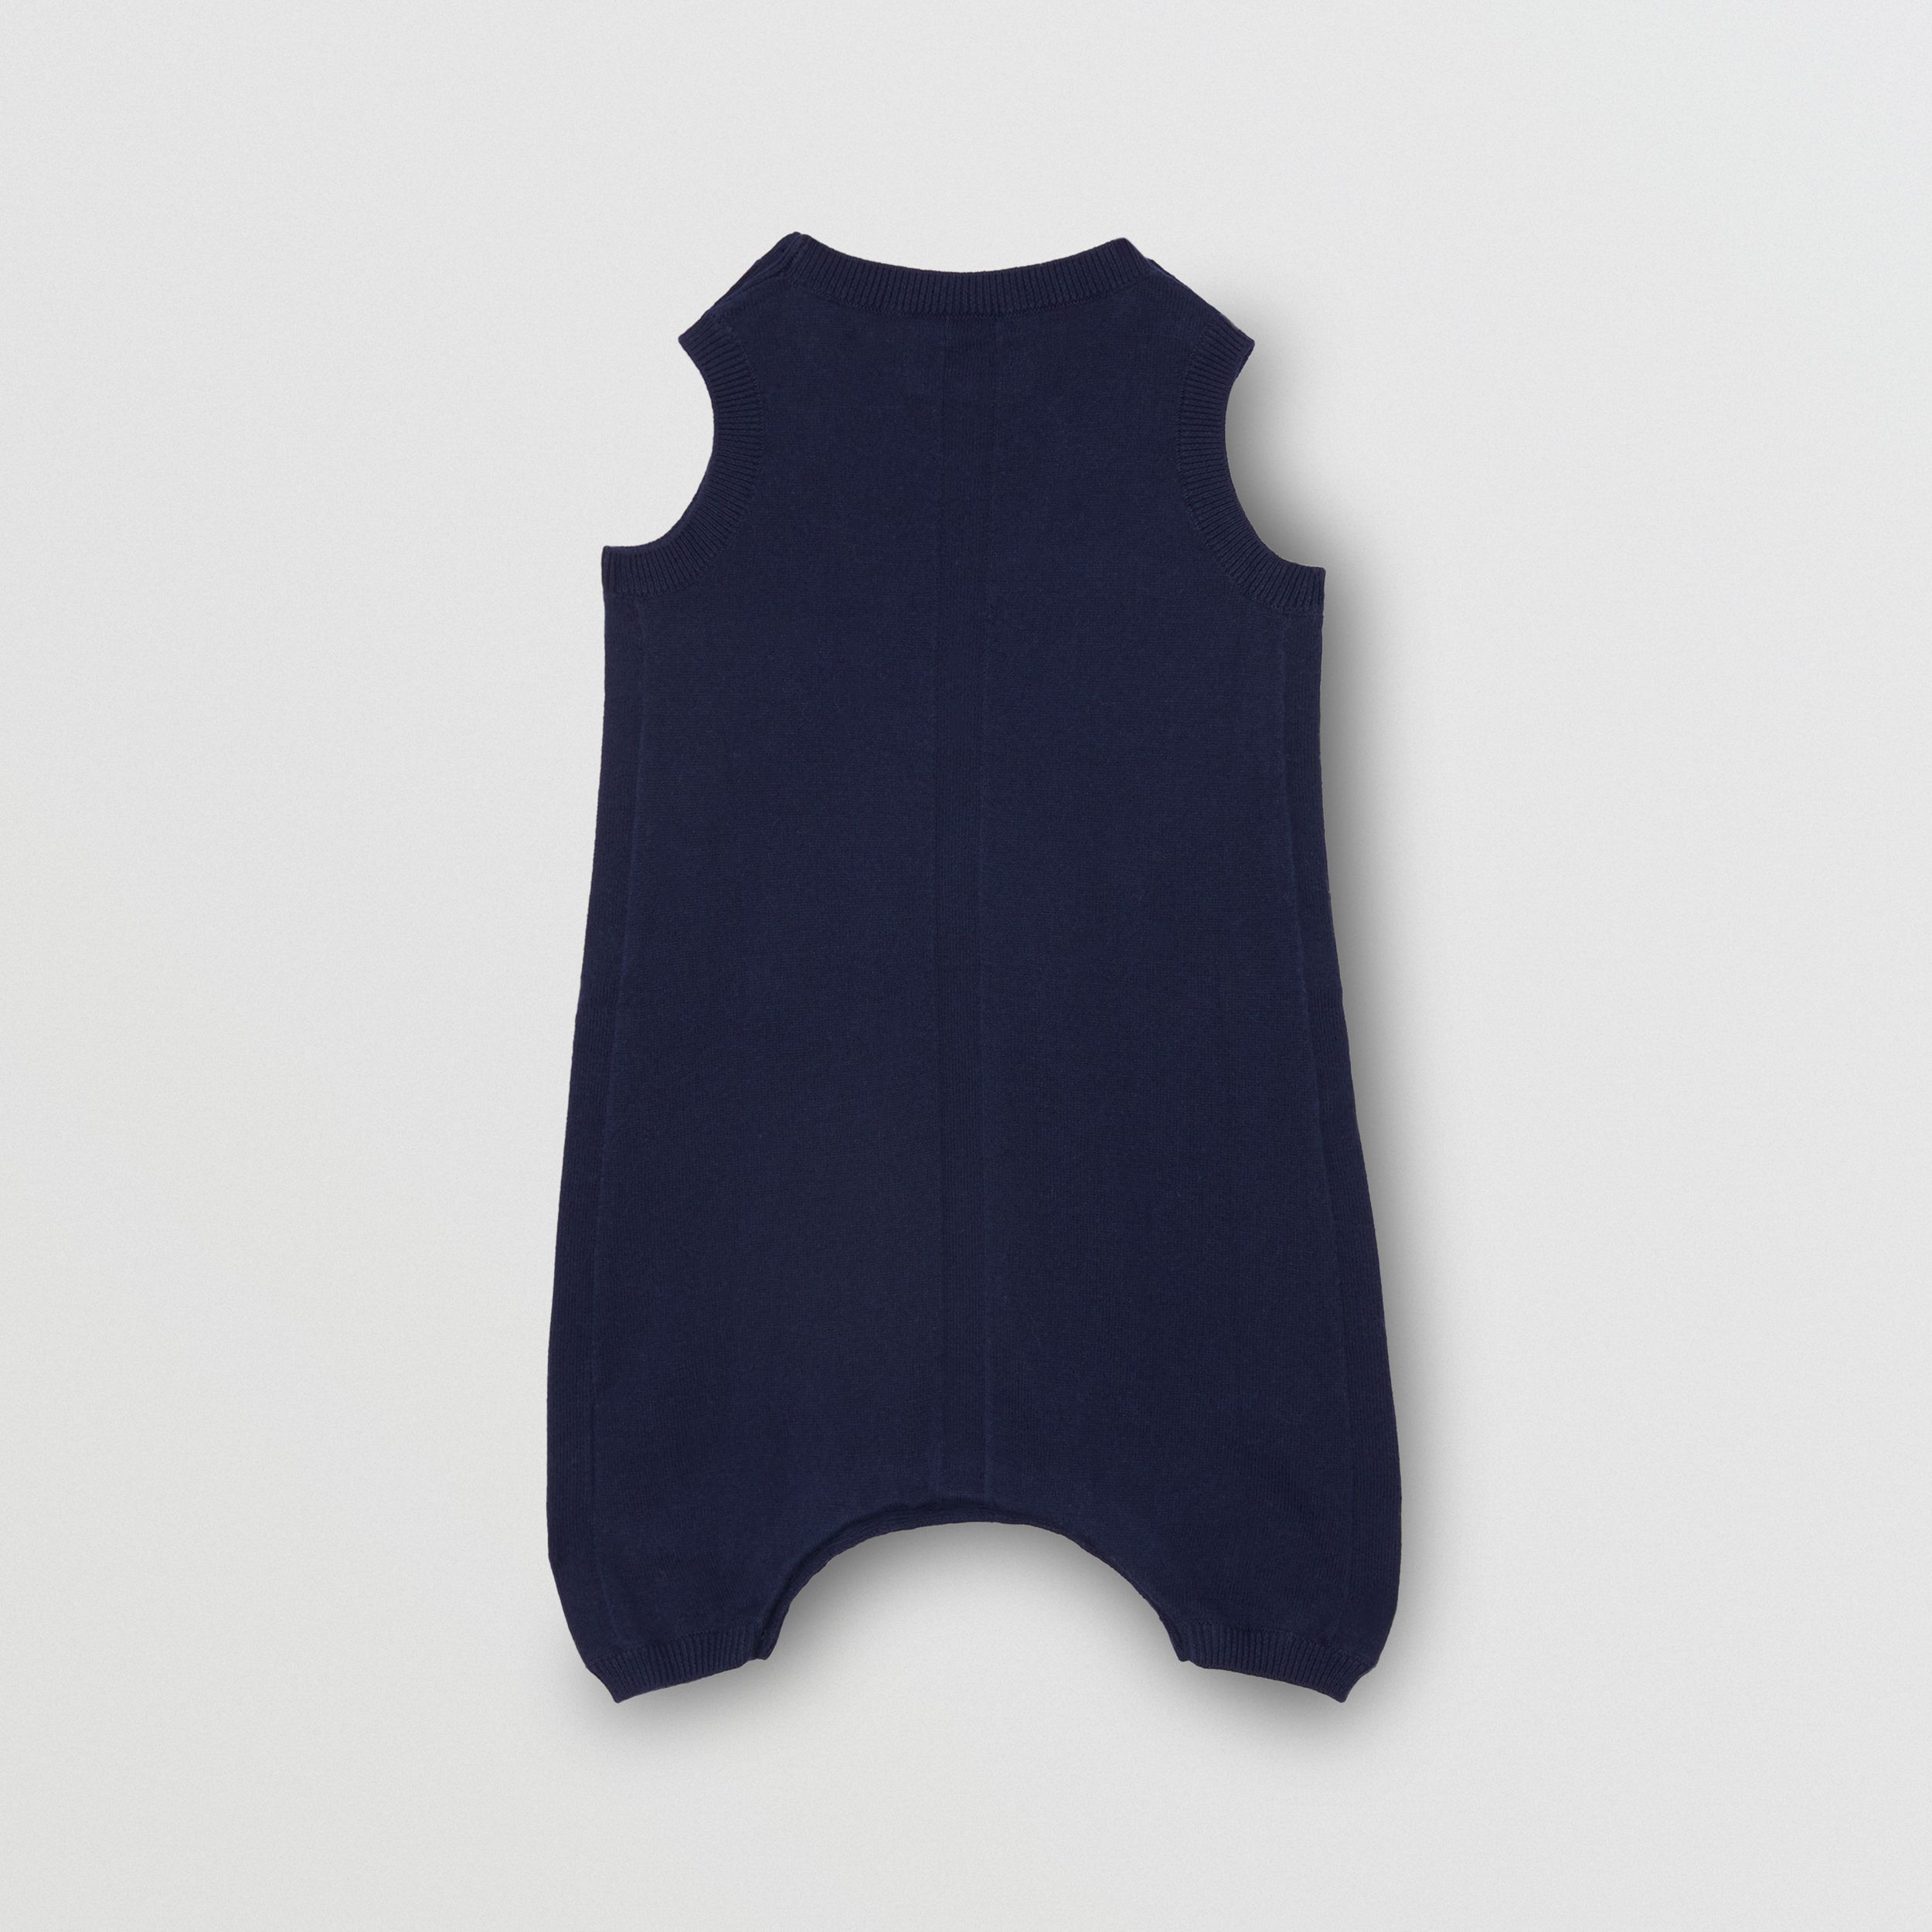 Logo Print Cotton Bodysuit in Indigo | Burberry - 3